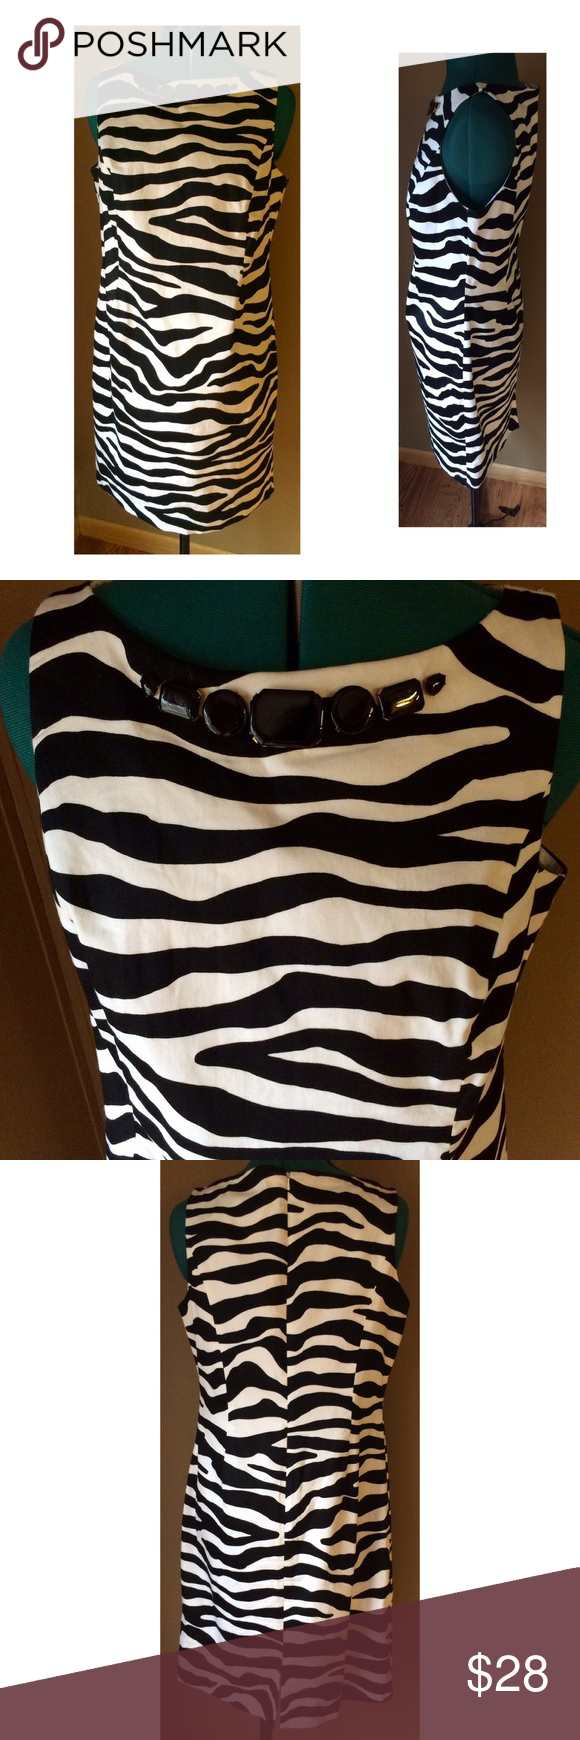 "Jones NY Zebra Print Beaded Shift Dress Black and white zebra print shift dress from Jones New York.  Features a ""necklace style"" big beaded accent at neckline.  Fitted at the waist and zips up the back.  Fully lined. Condition: good used condition - gently worn, free of rips, stains, odors. Material: Cotton/Spandex with Polyester lining Size: L Pit to Pit: 20"" with stretch available Waist: 35"" (natural) Hips: 40"" Length: 37"" Jones New York Dresses"